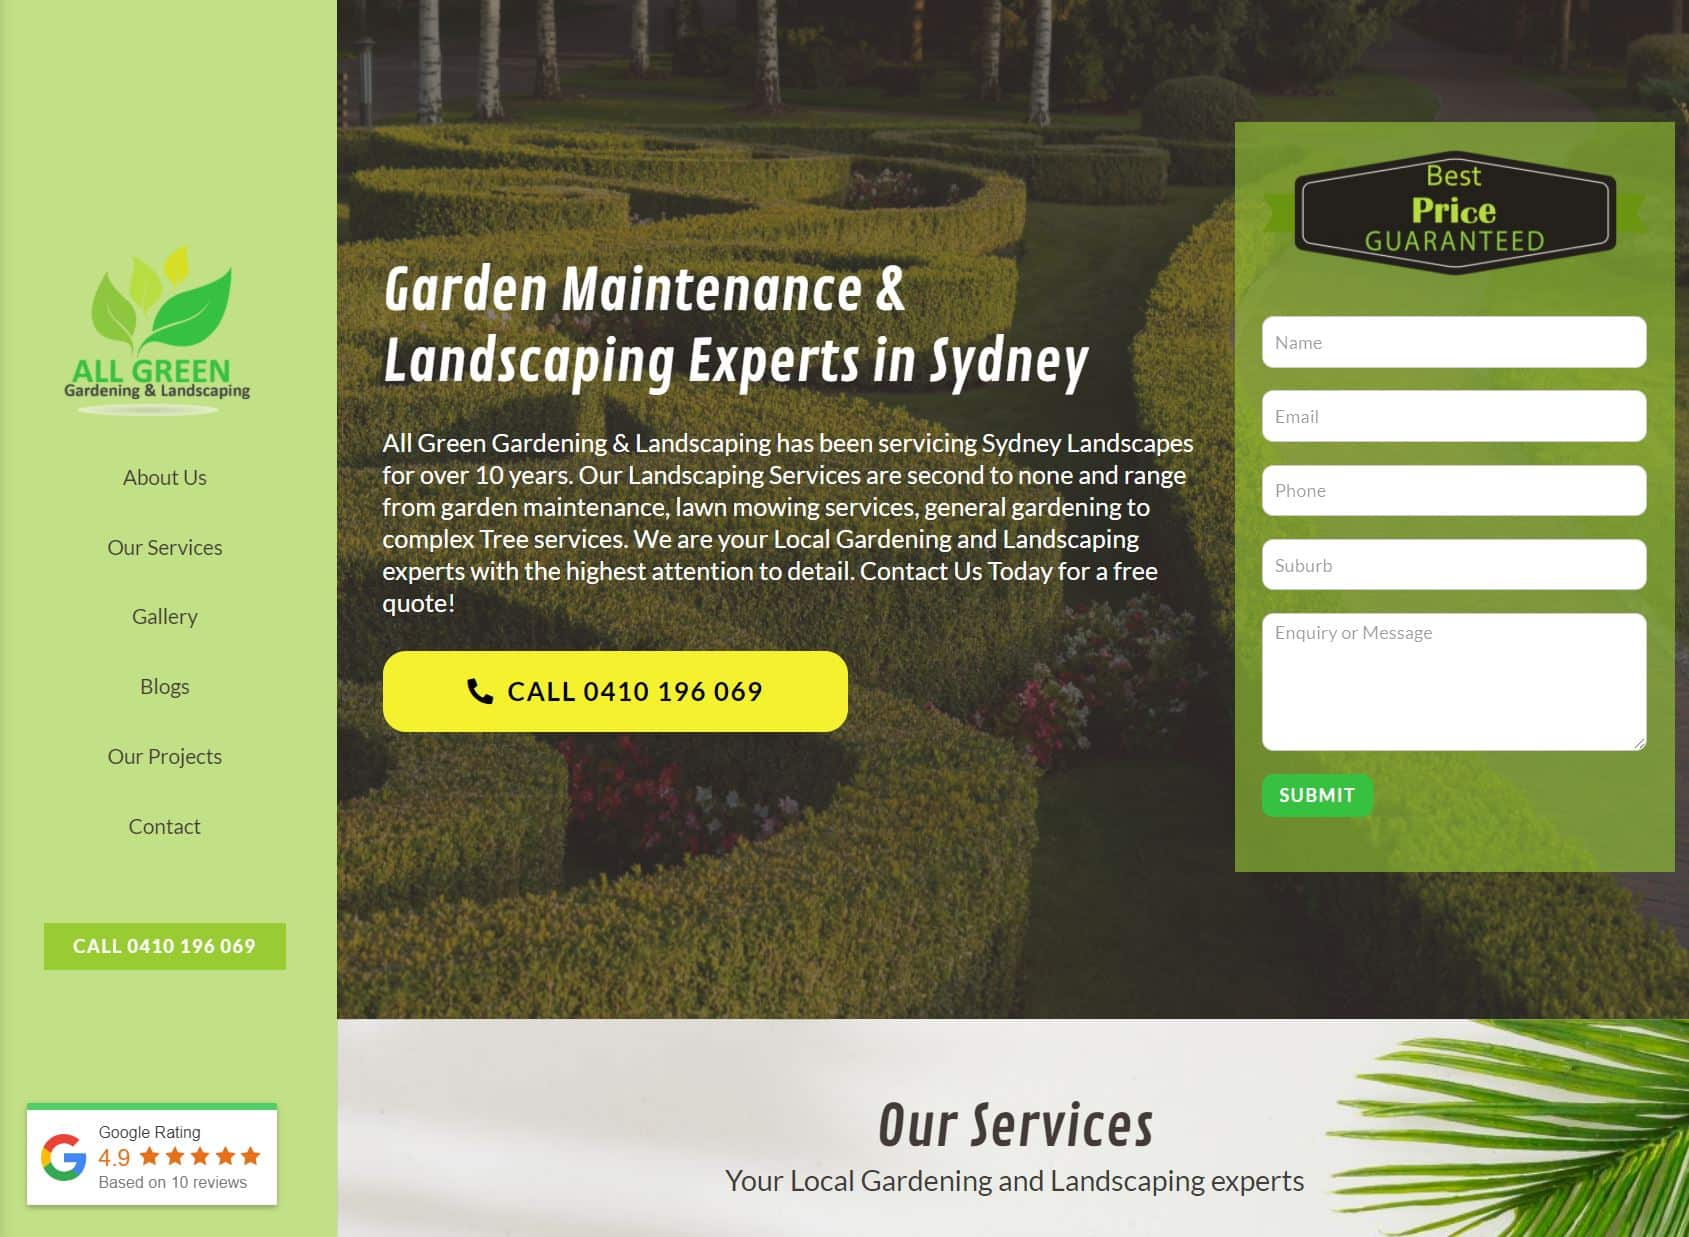 All Green Gardening and Landscaping